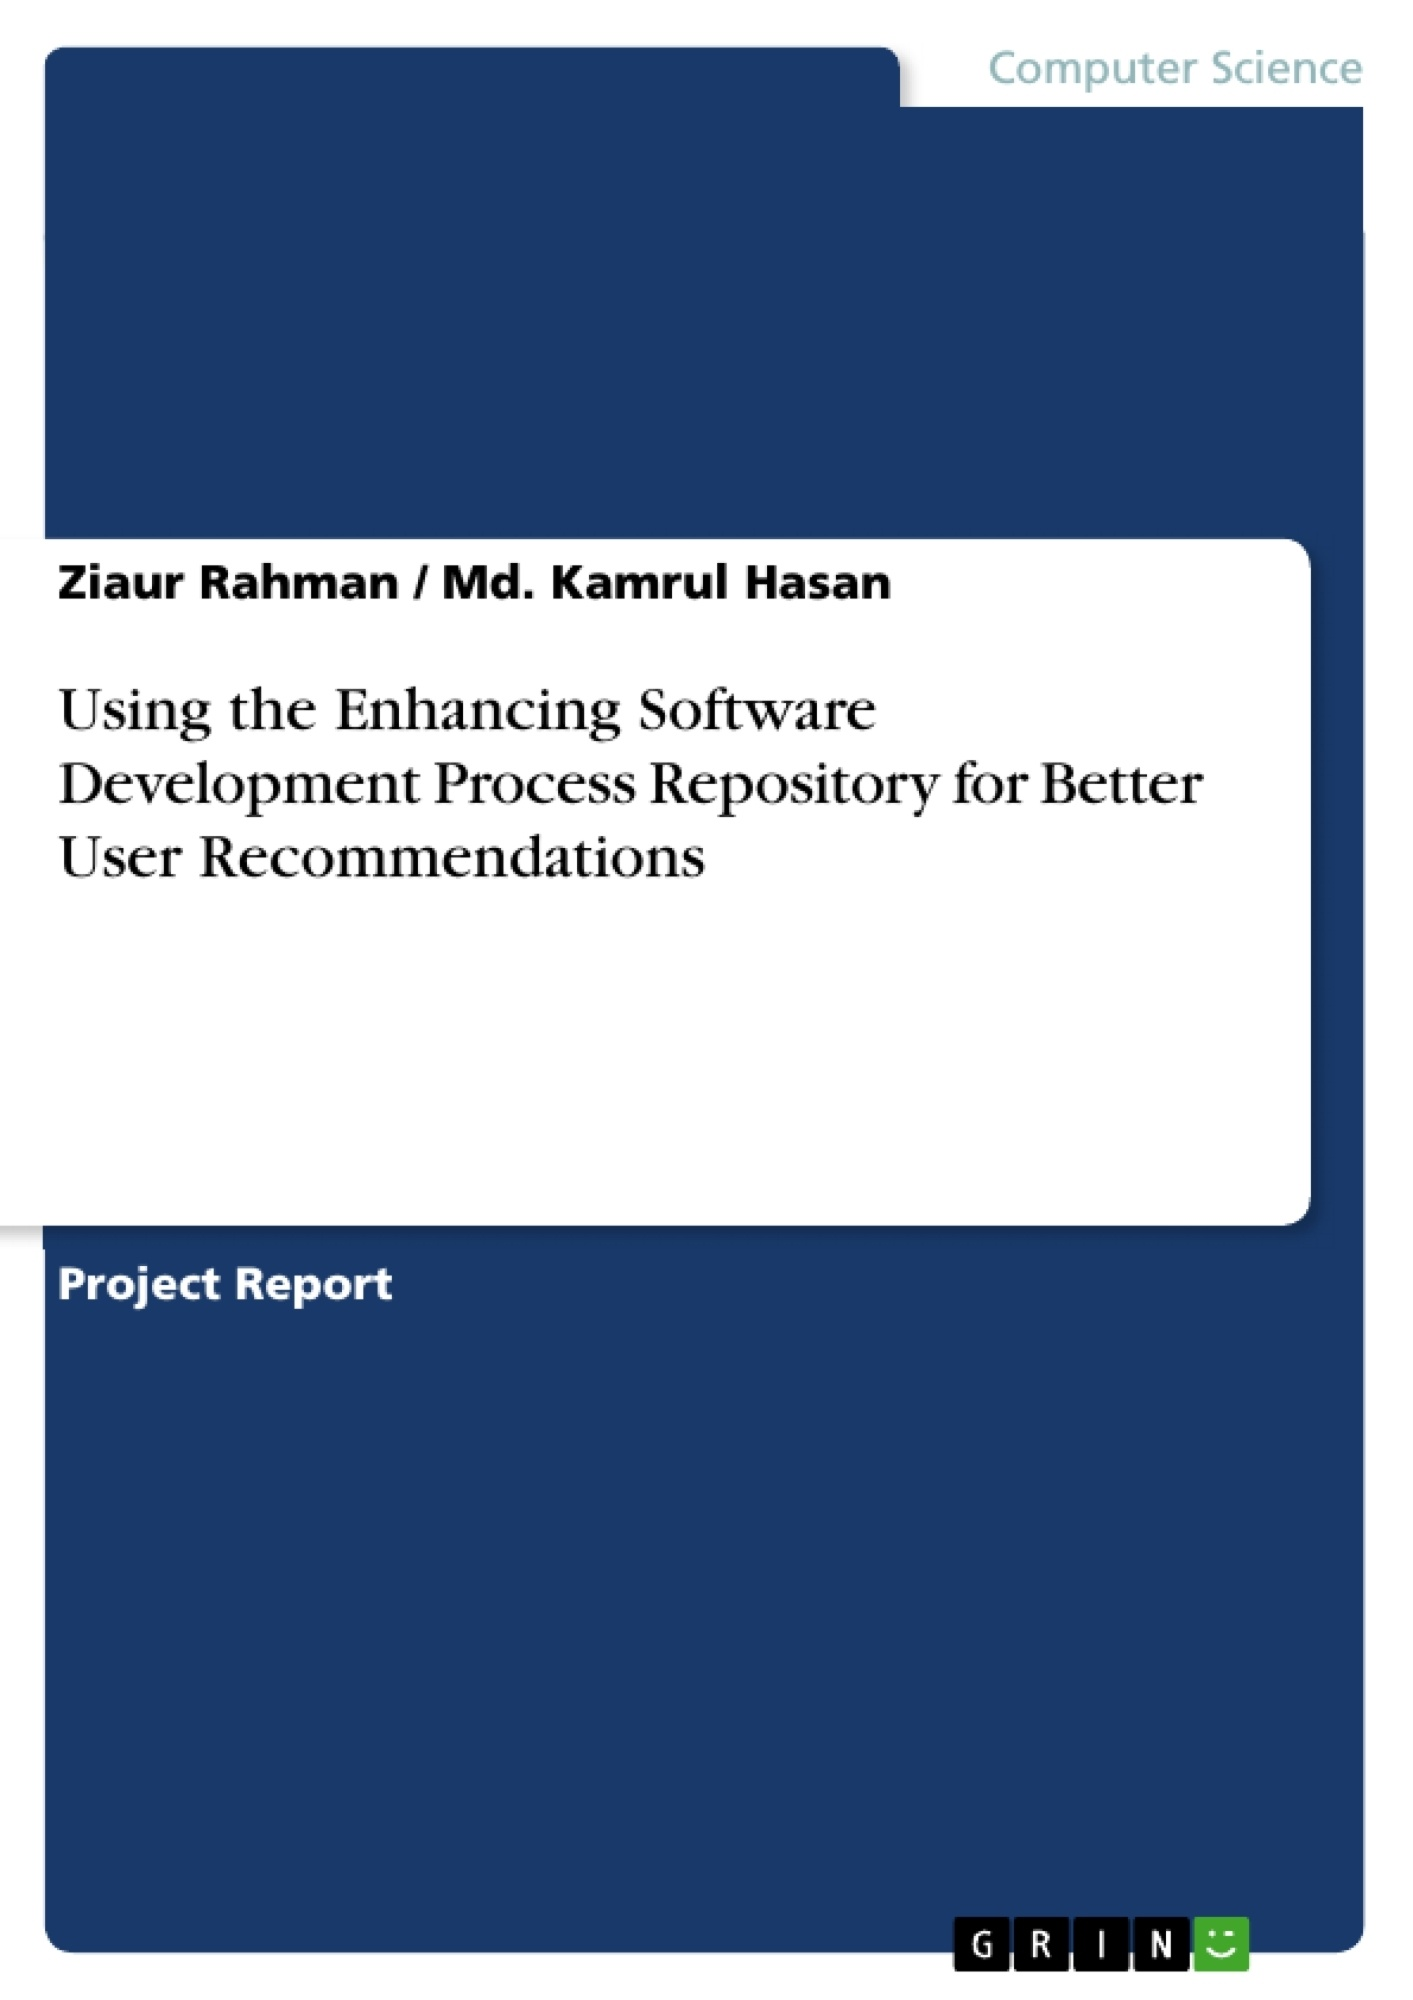 Title: Using the Enhancing Software Development Process Repository for Better User Recommendations